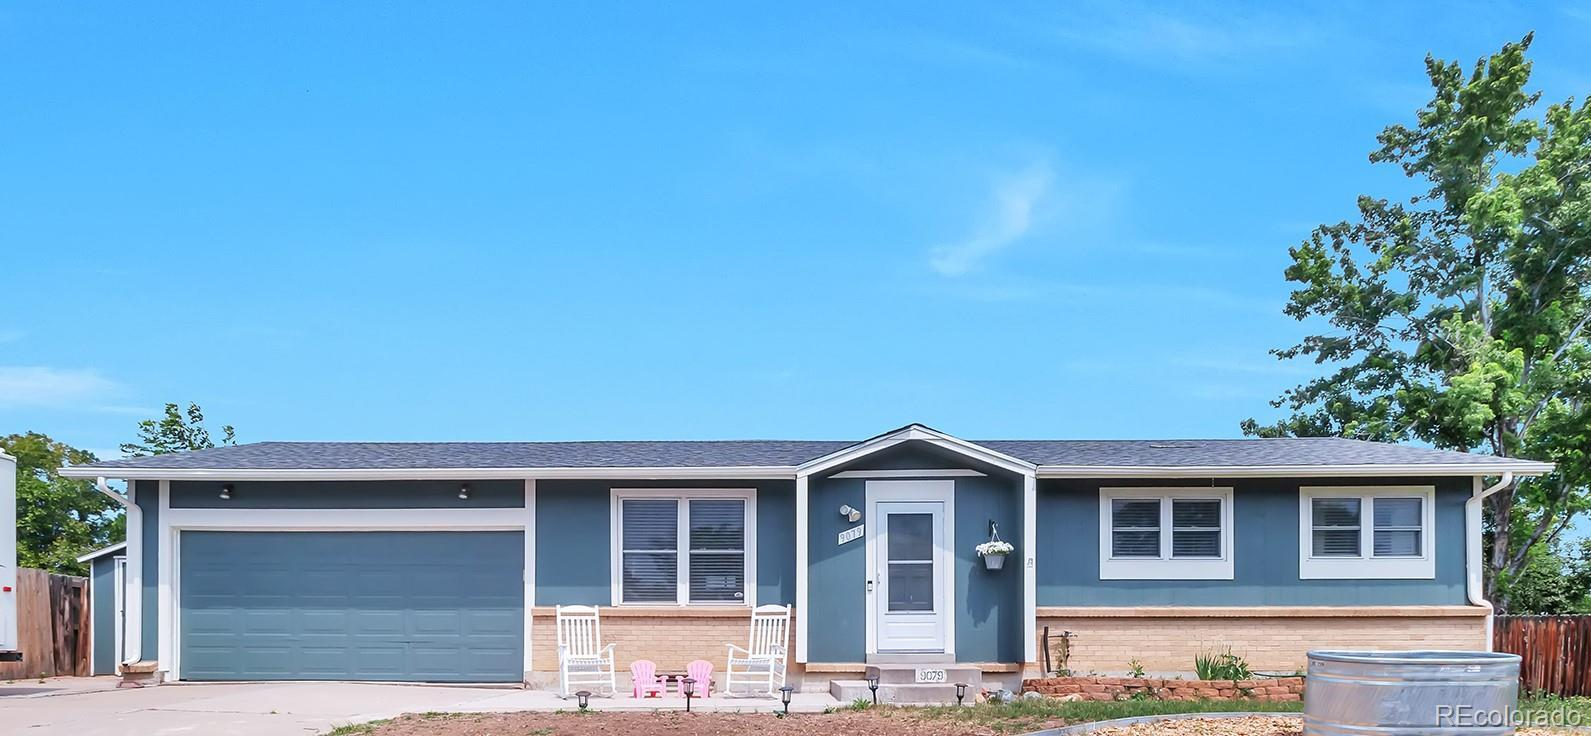 9079 Cody Circle, Westminster, CO 80021 - #: 5411203